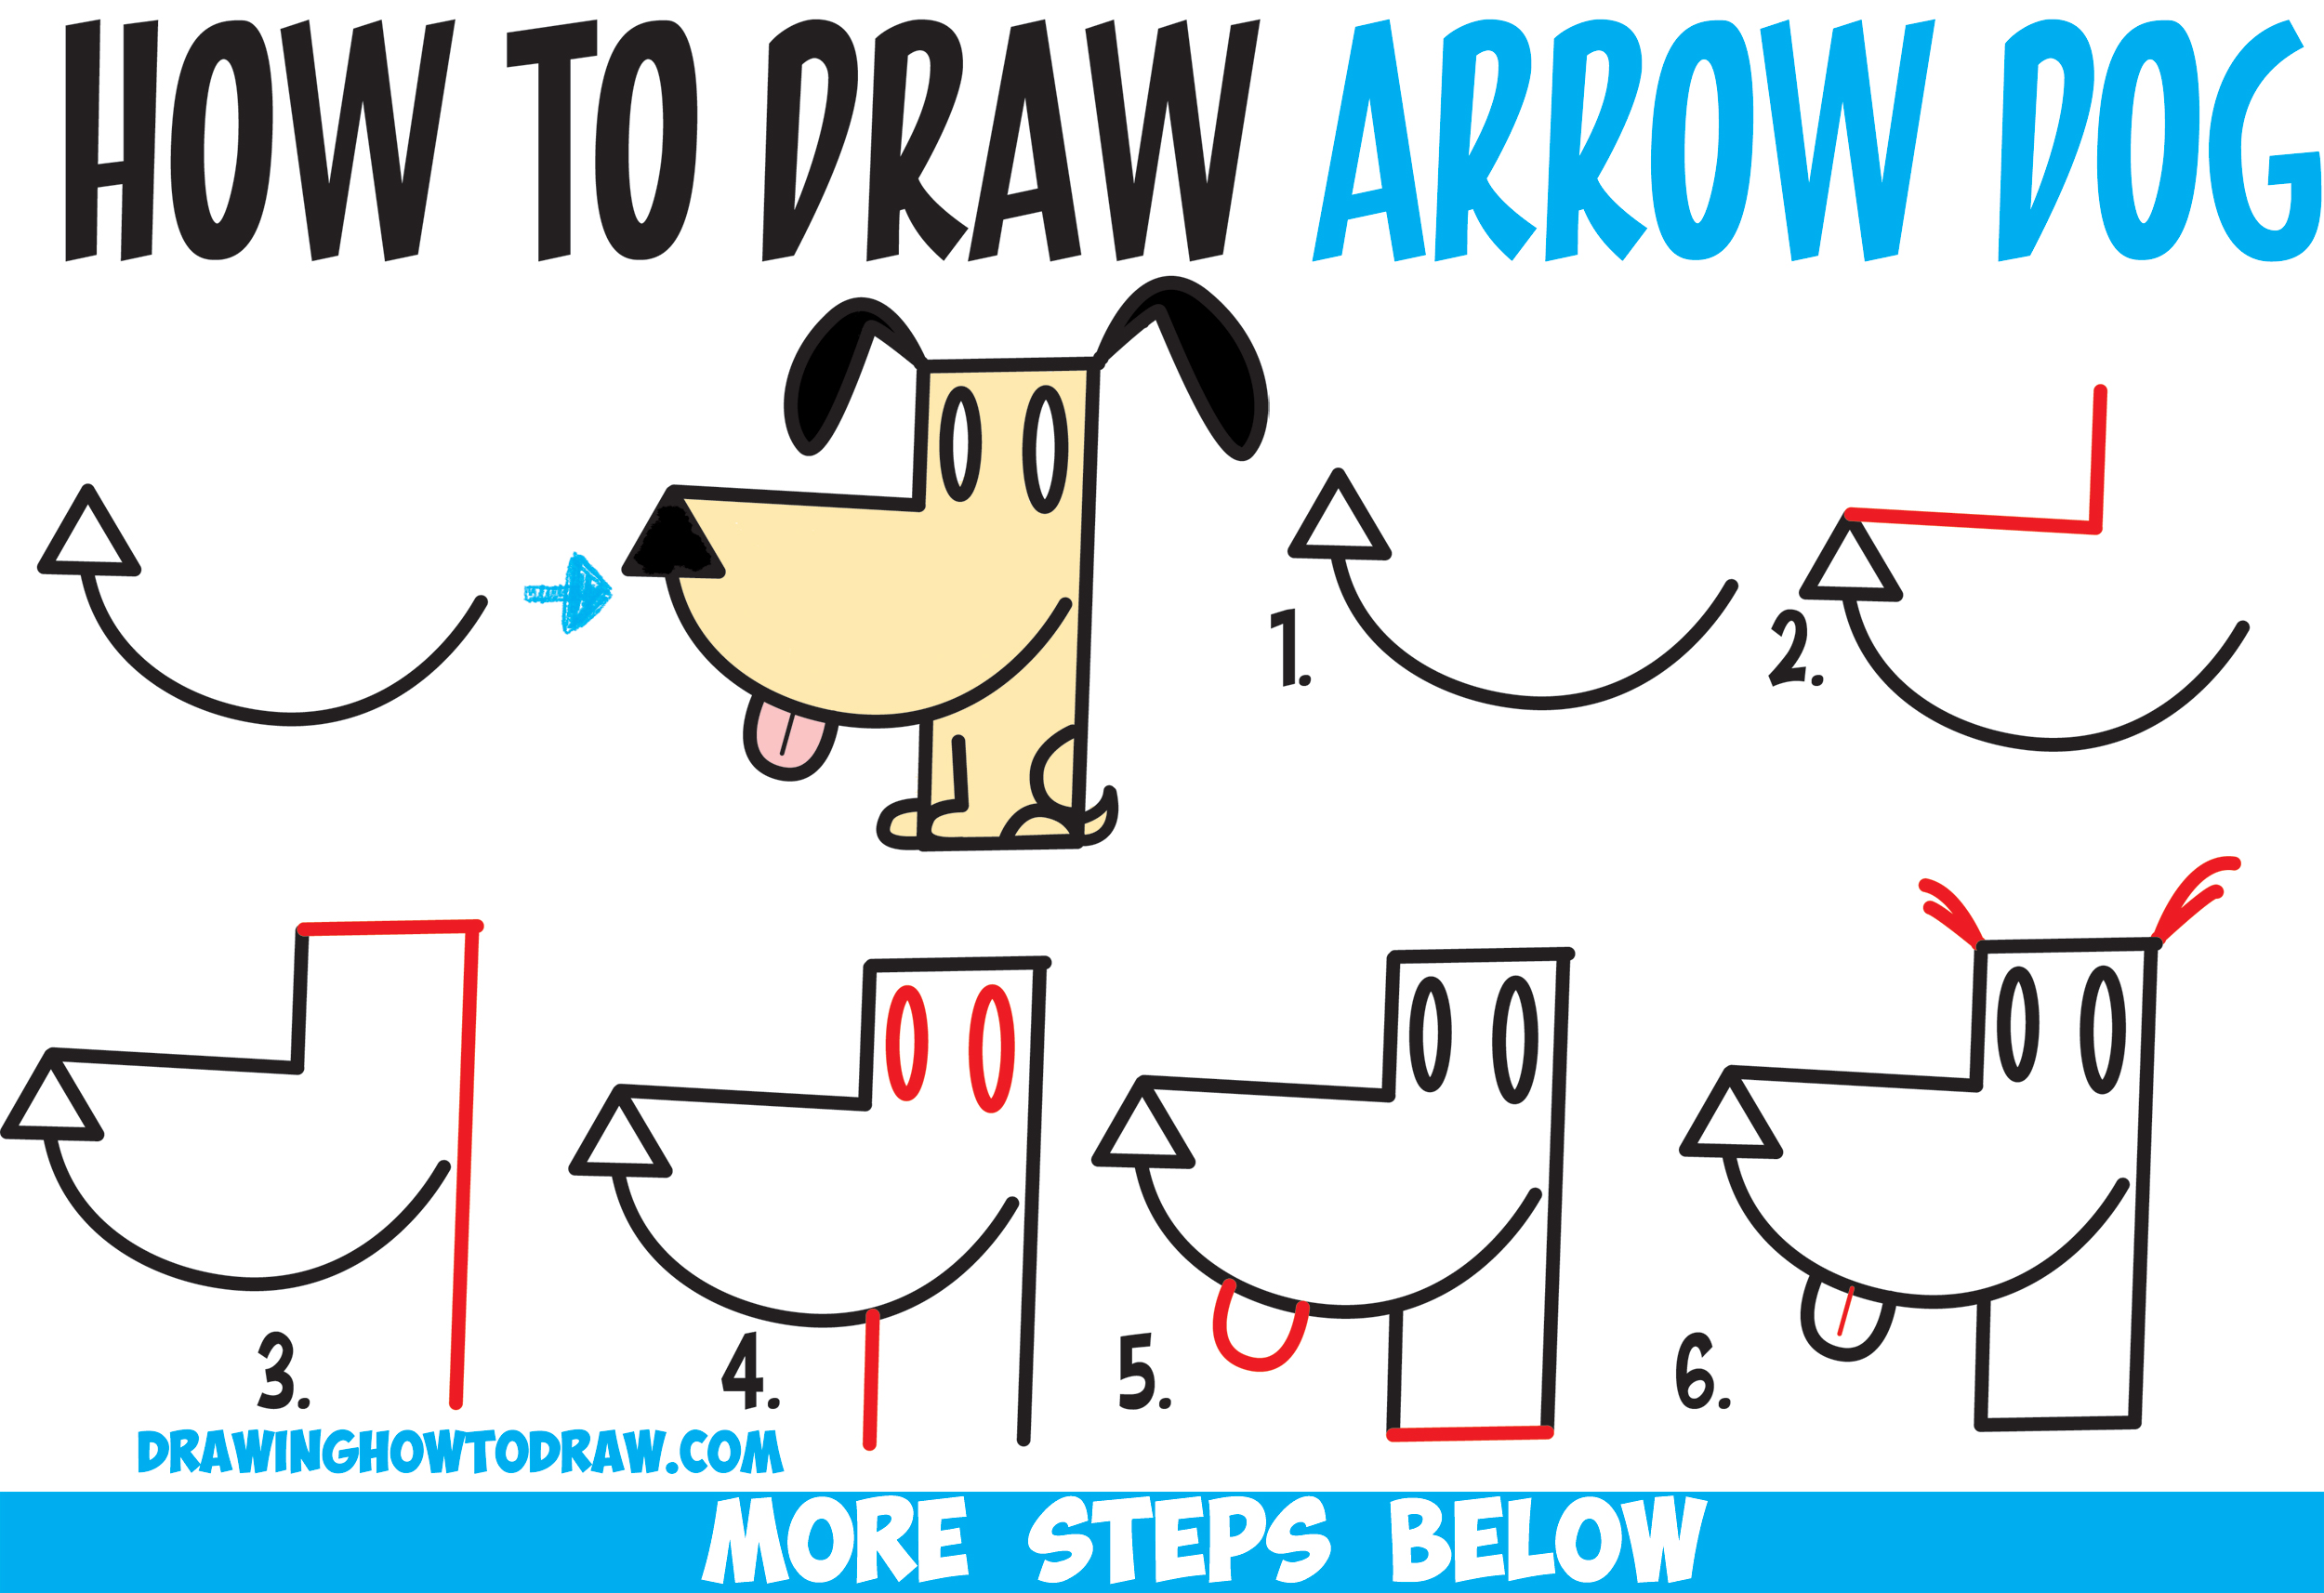 how to draw a cartoon dog from an arrow shape easy step by step drawing